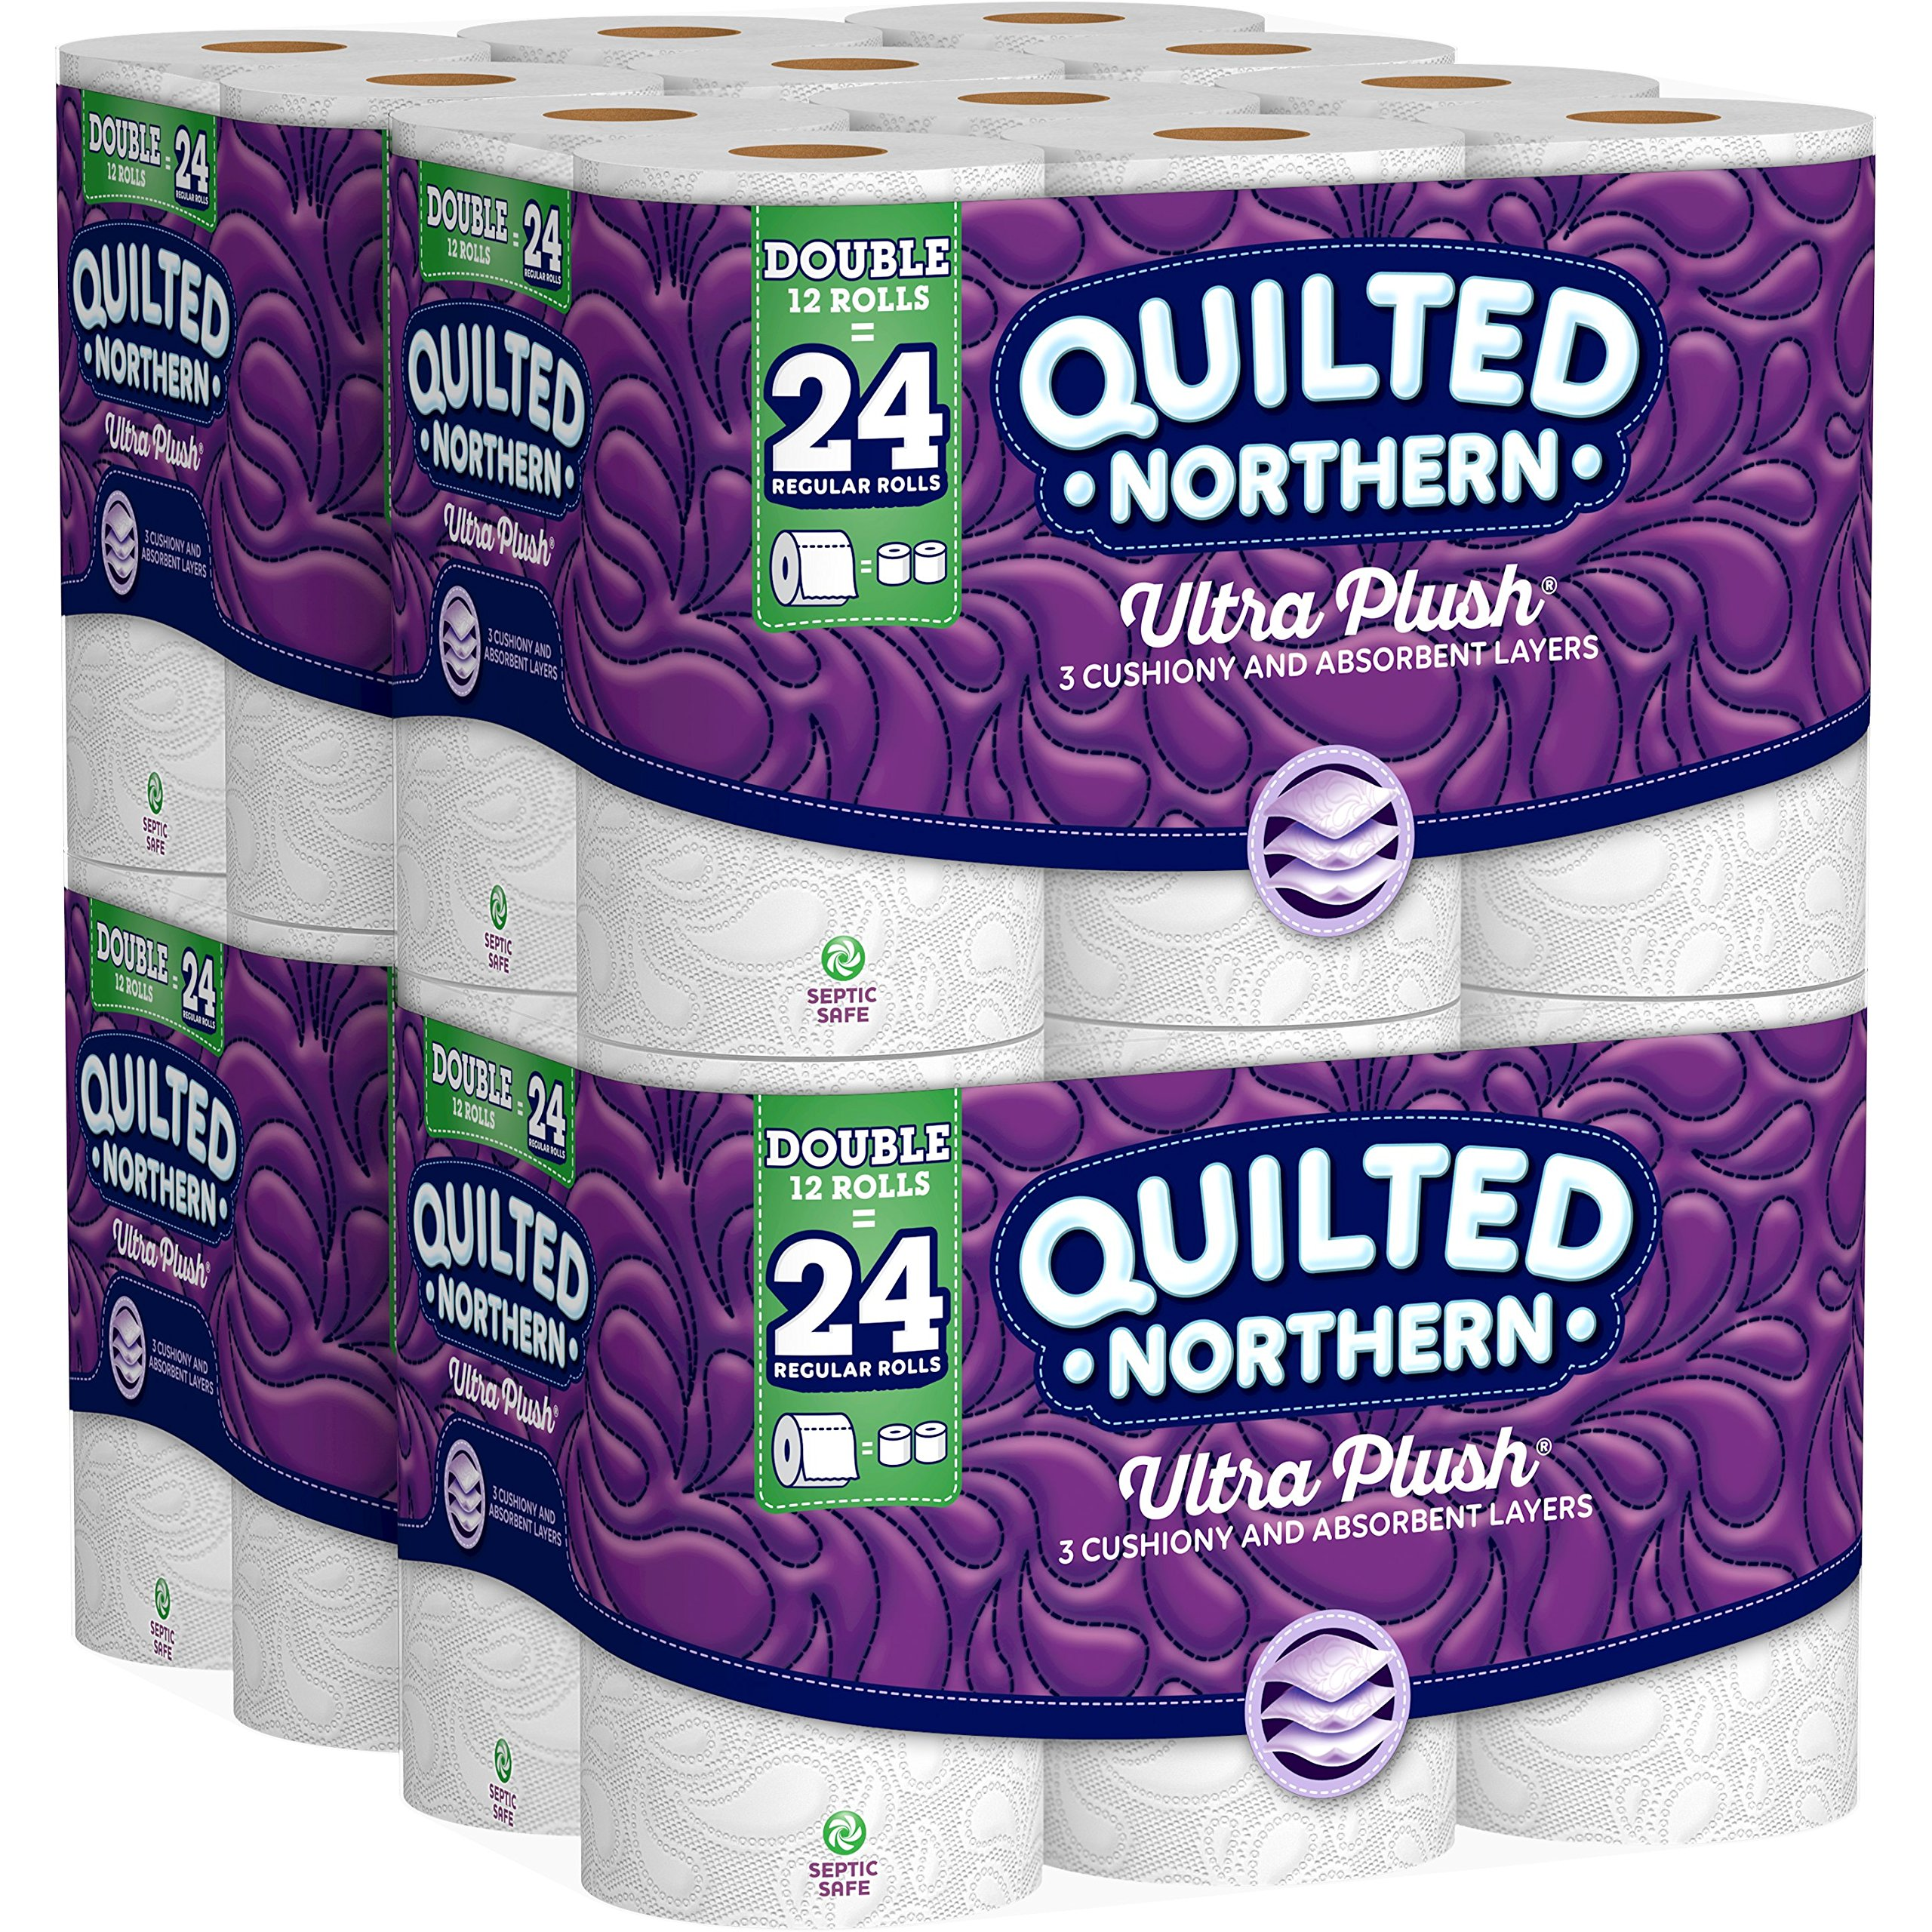 Ultra Plush Toilet Paper, 24 Double Rolls 2 Pack (2 Pack (24 Double Rolls Each))